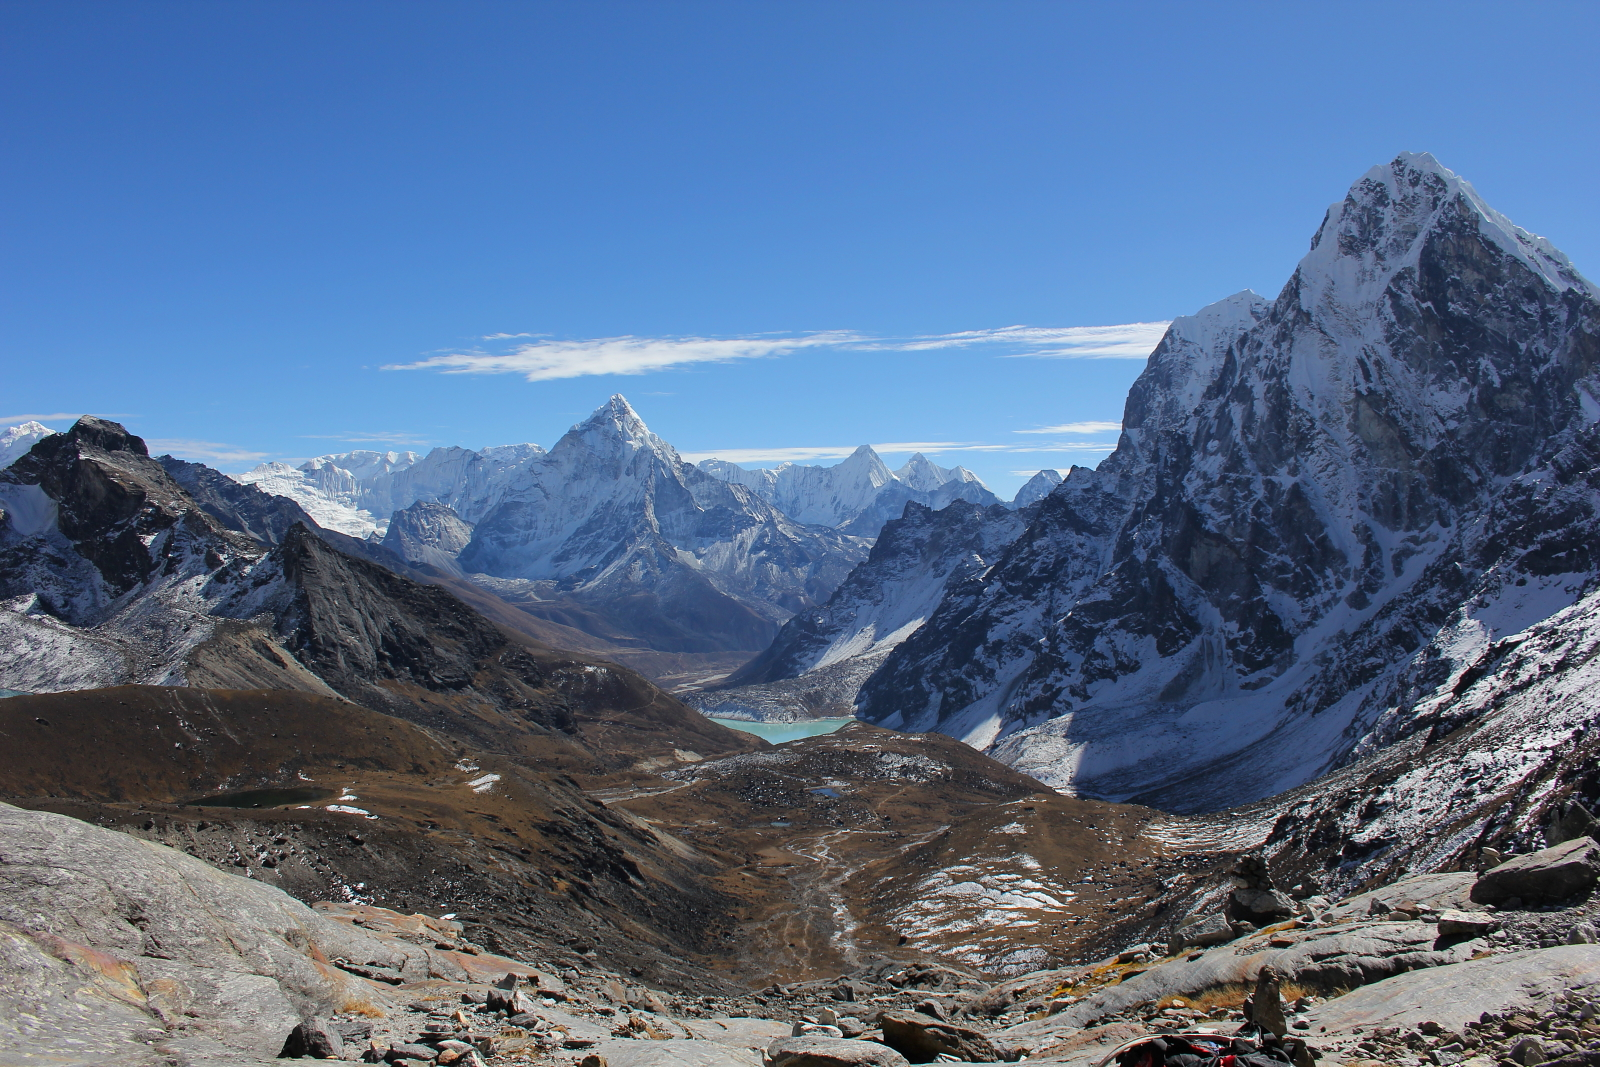 View of Taboche and Ama Dablam from the Cho La Pass in Nepal